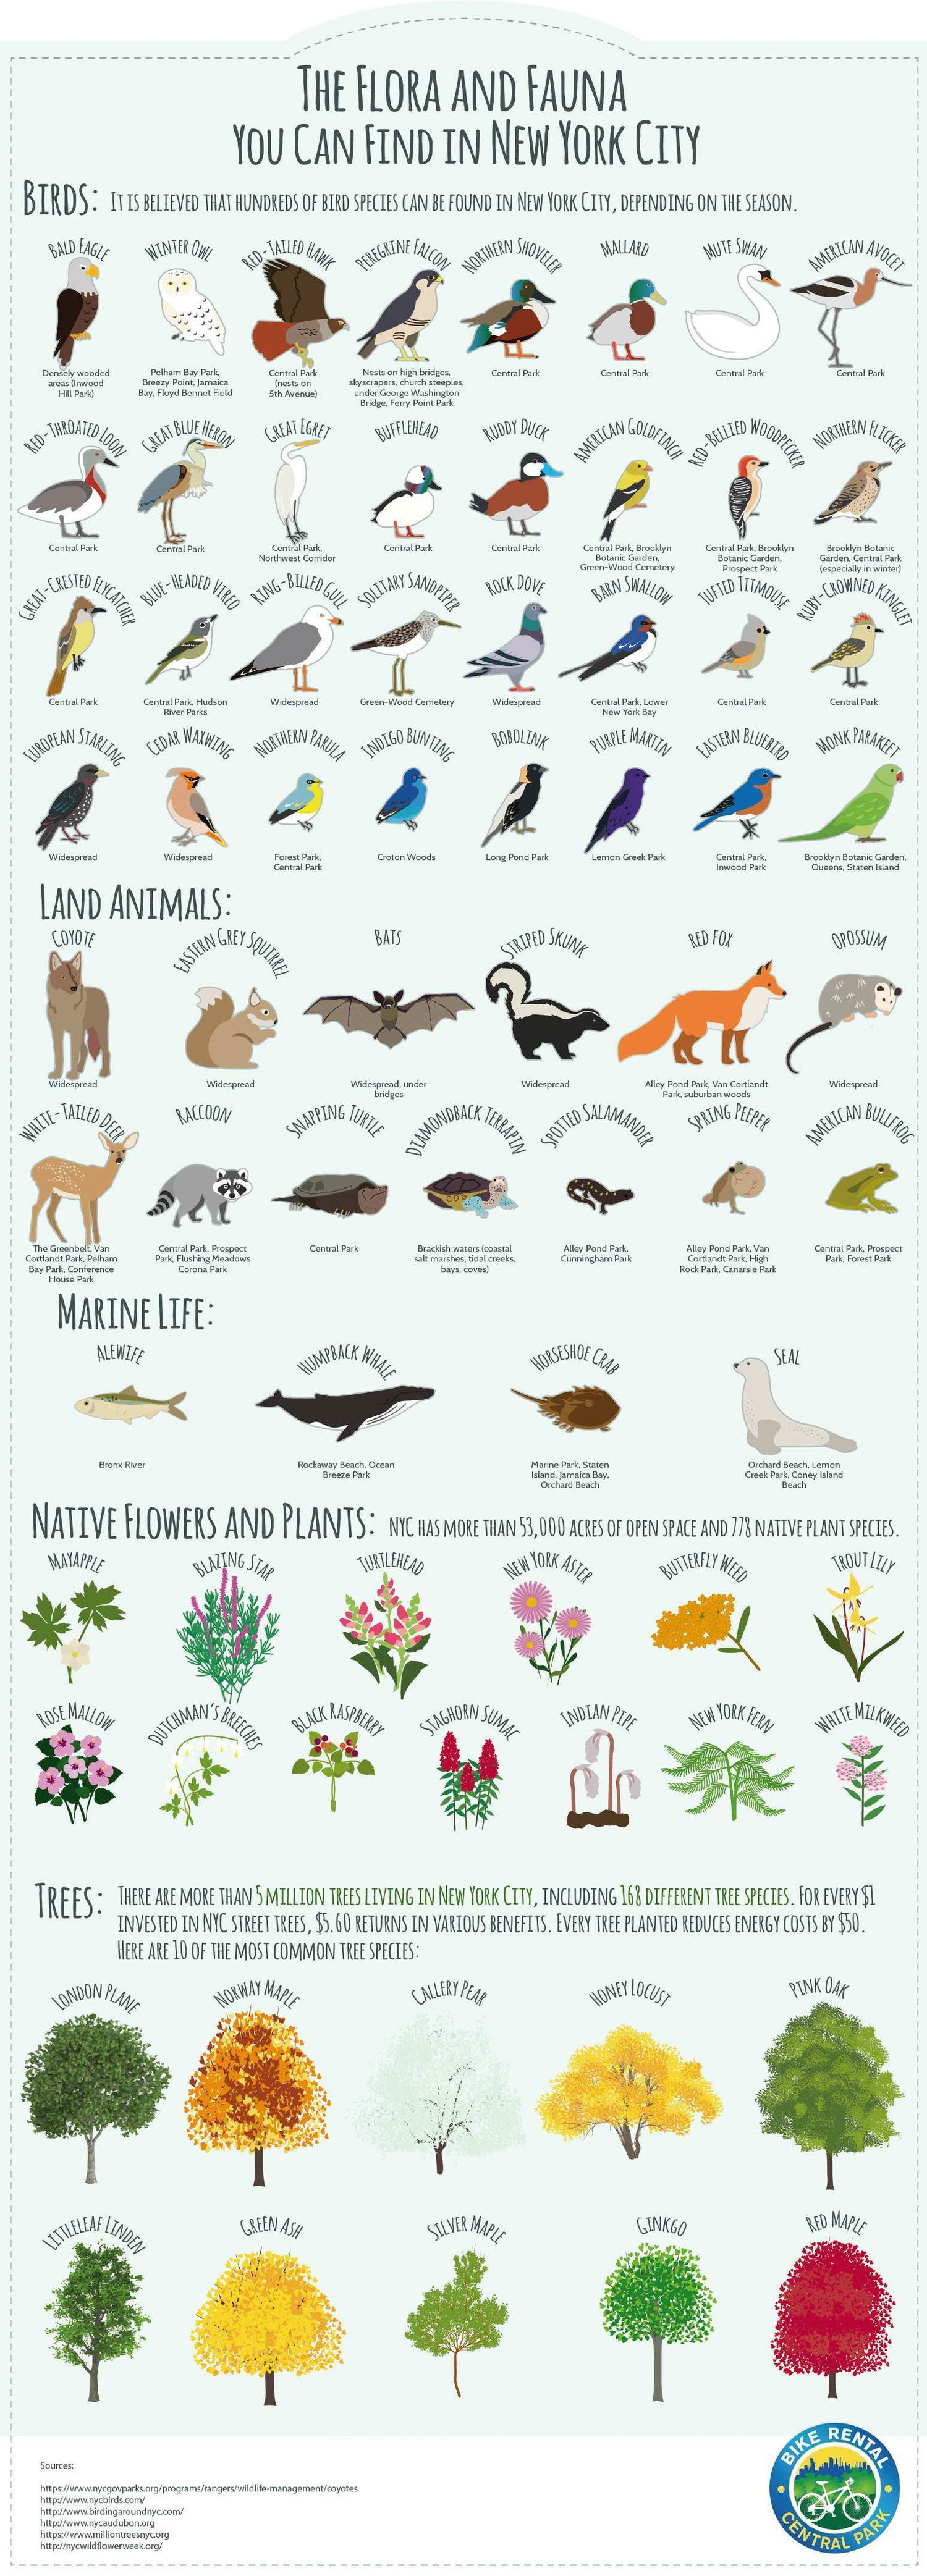 The Flora and Fauna You Can Find in New York City